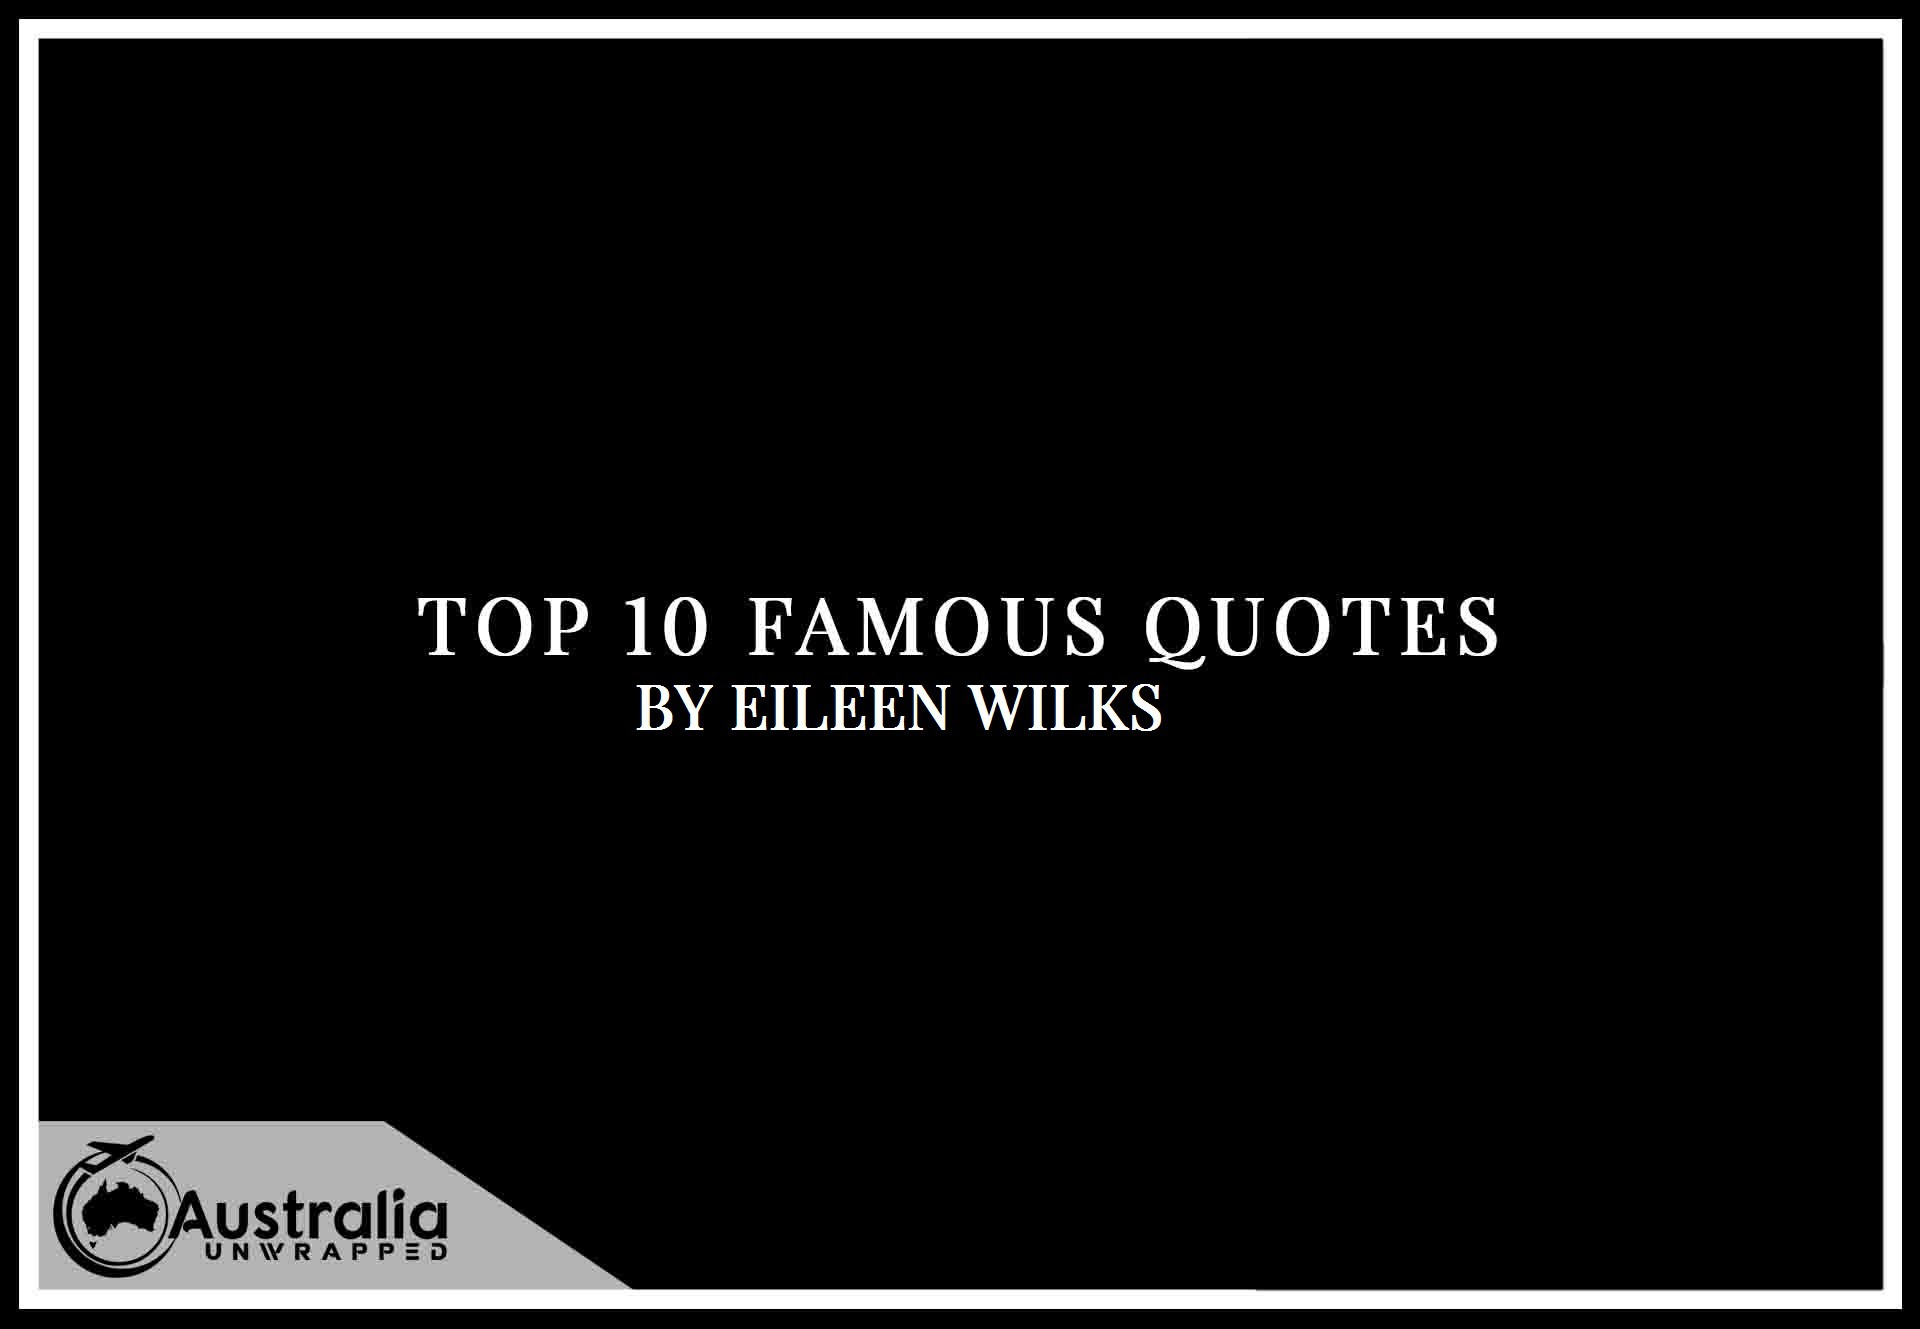 Eileen Wilks's Top 10 Popular and Famous Quotes